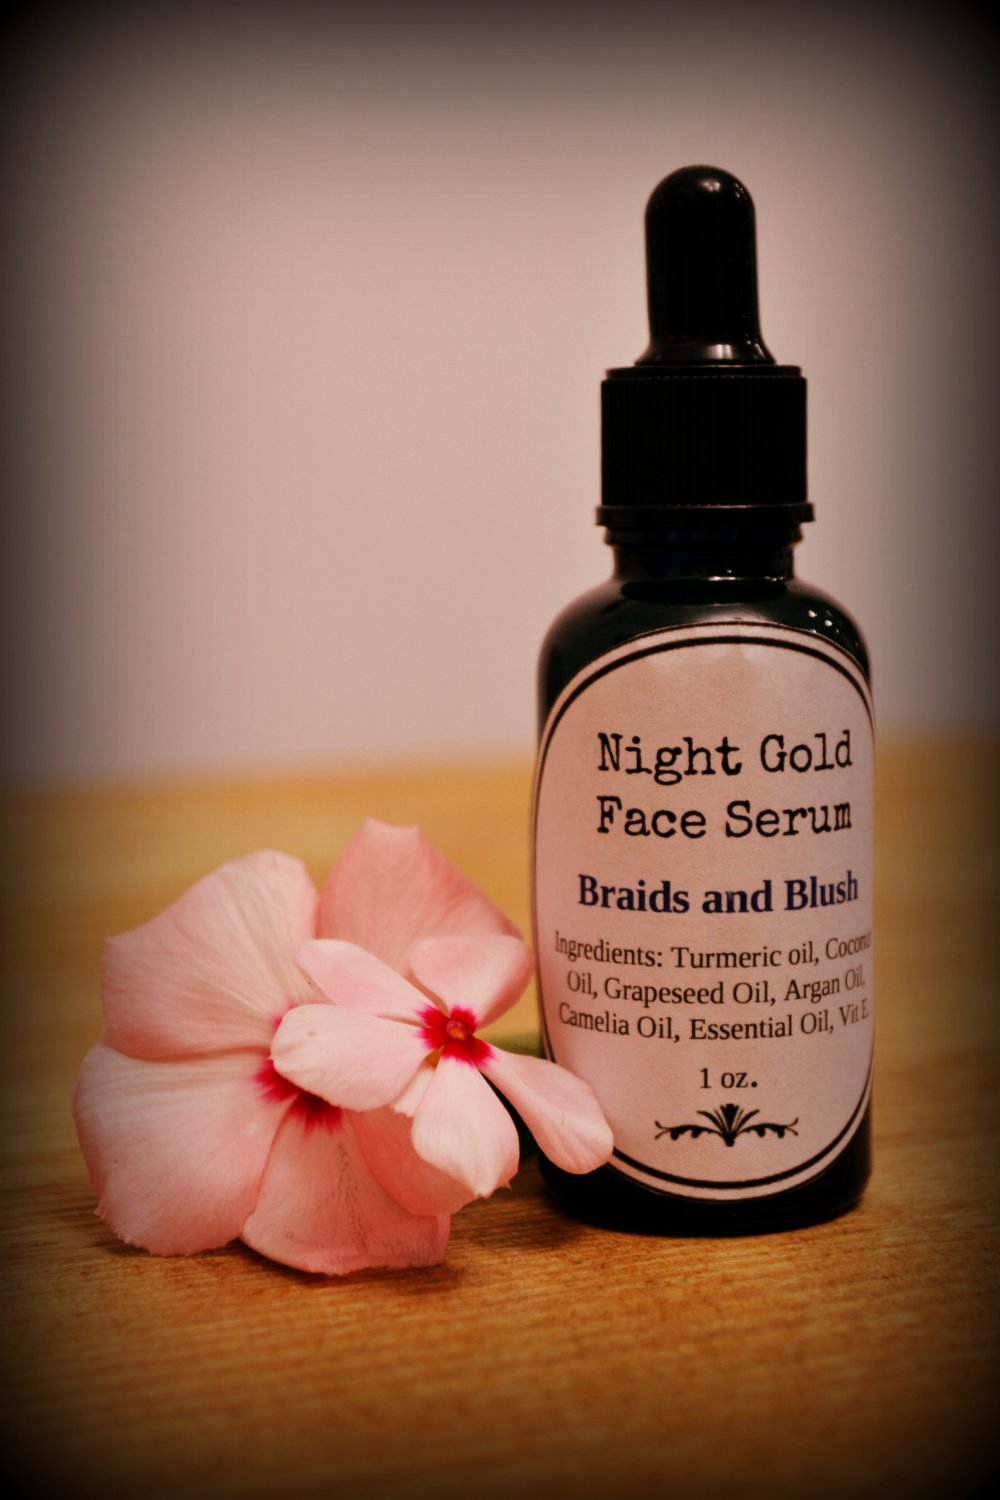 Moisturizing Face Serum - Good for Acne/Scars/Blemishes/Dry Skin